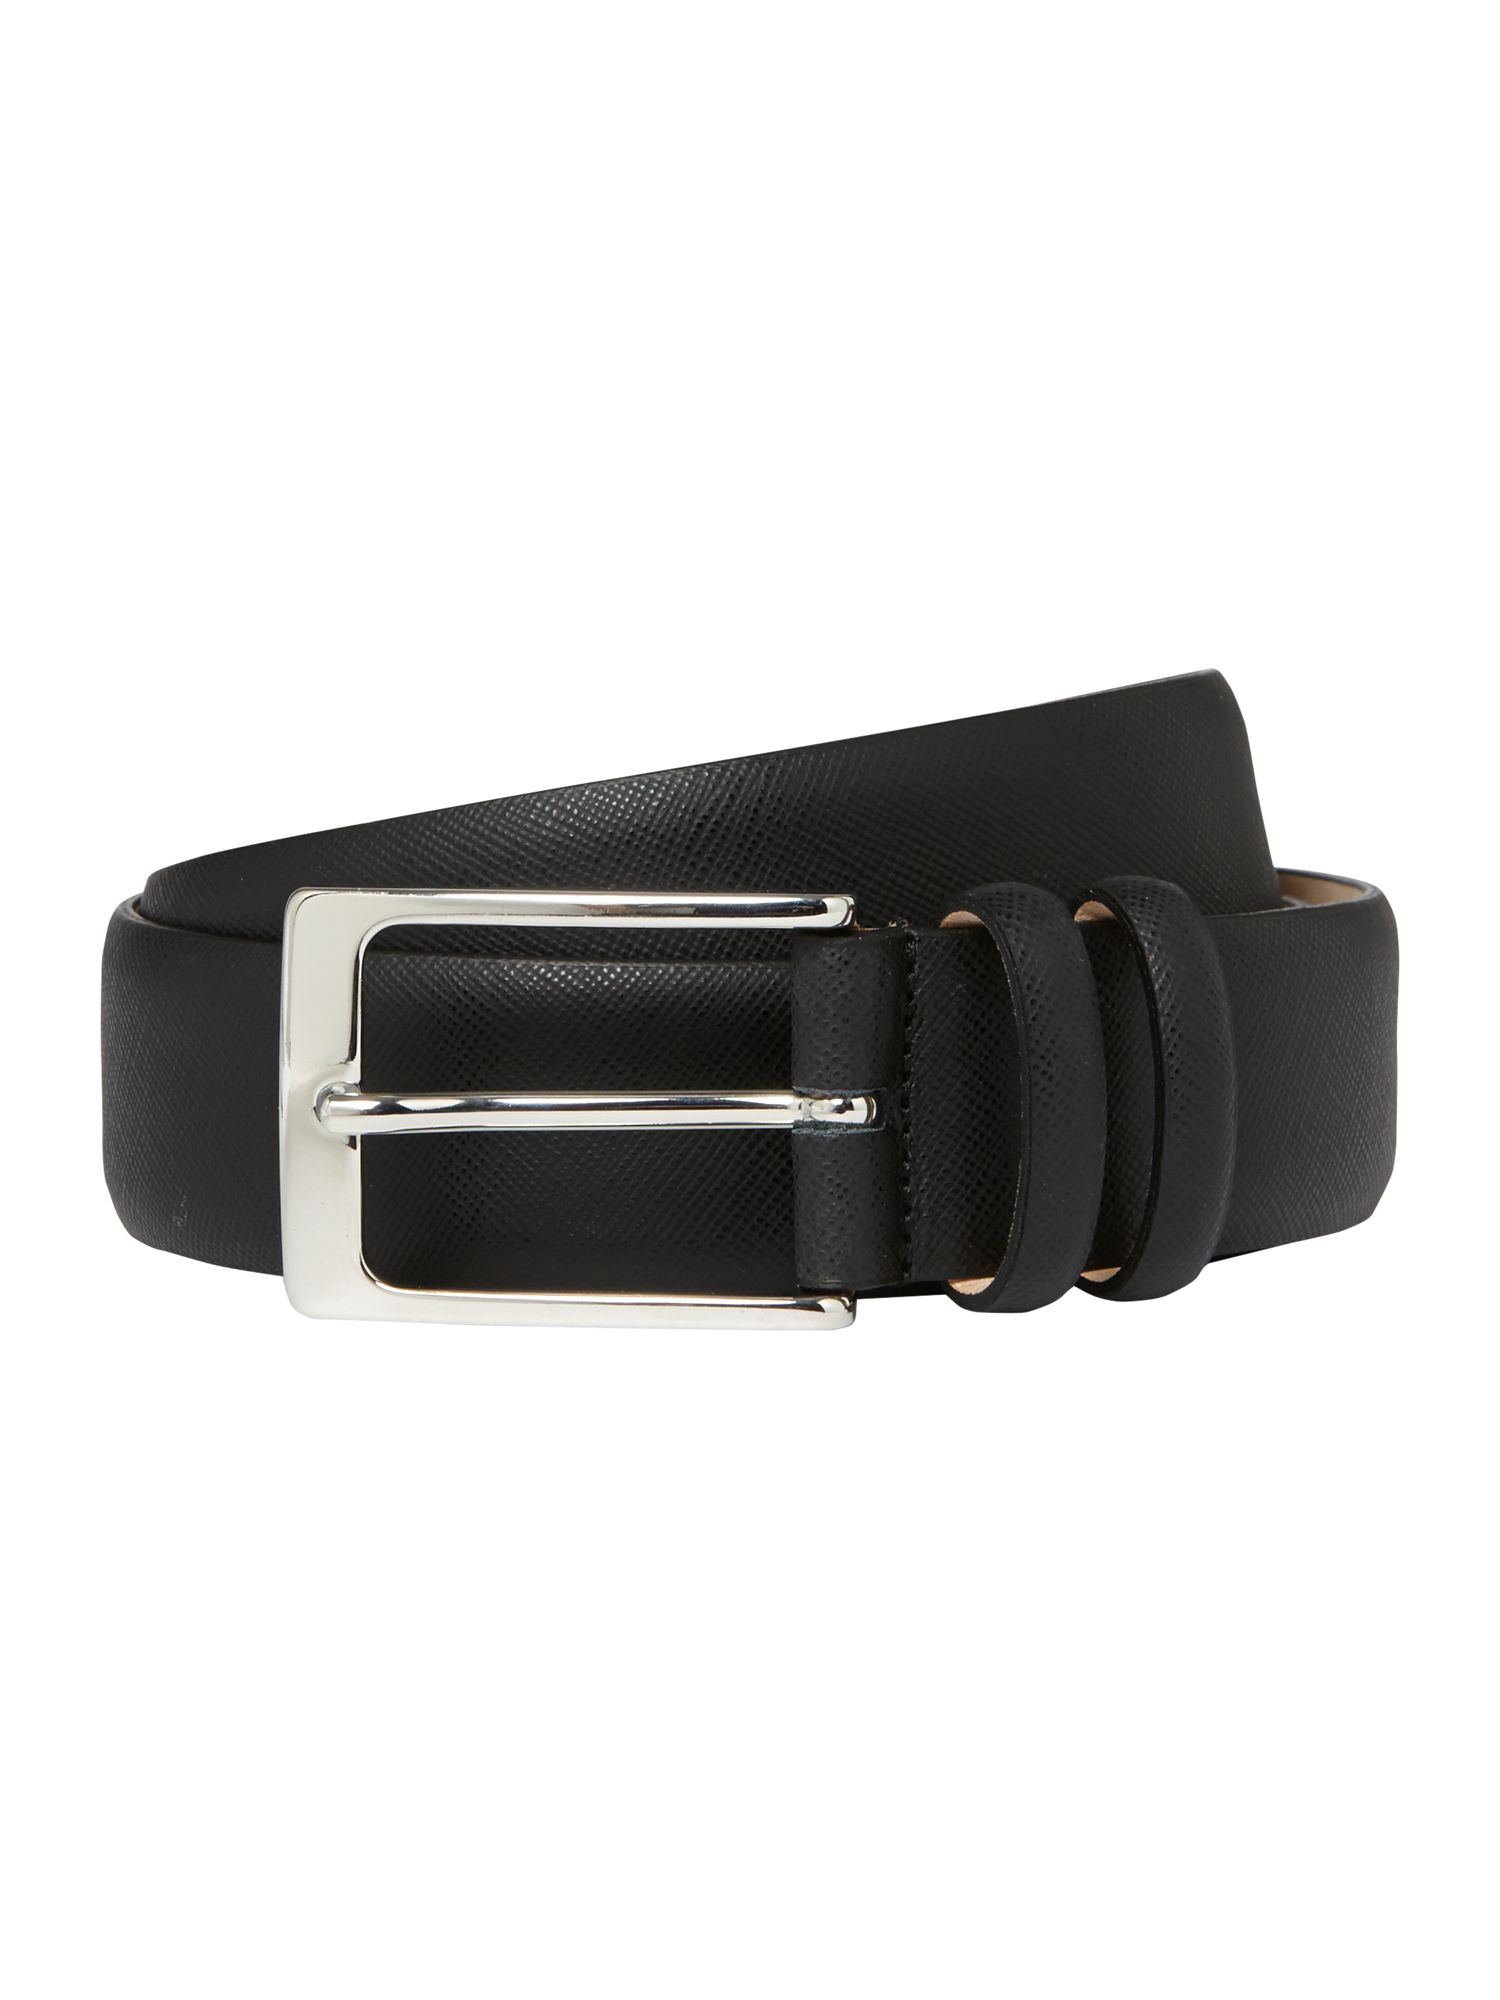 Formal saffiano leather belt